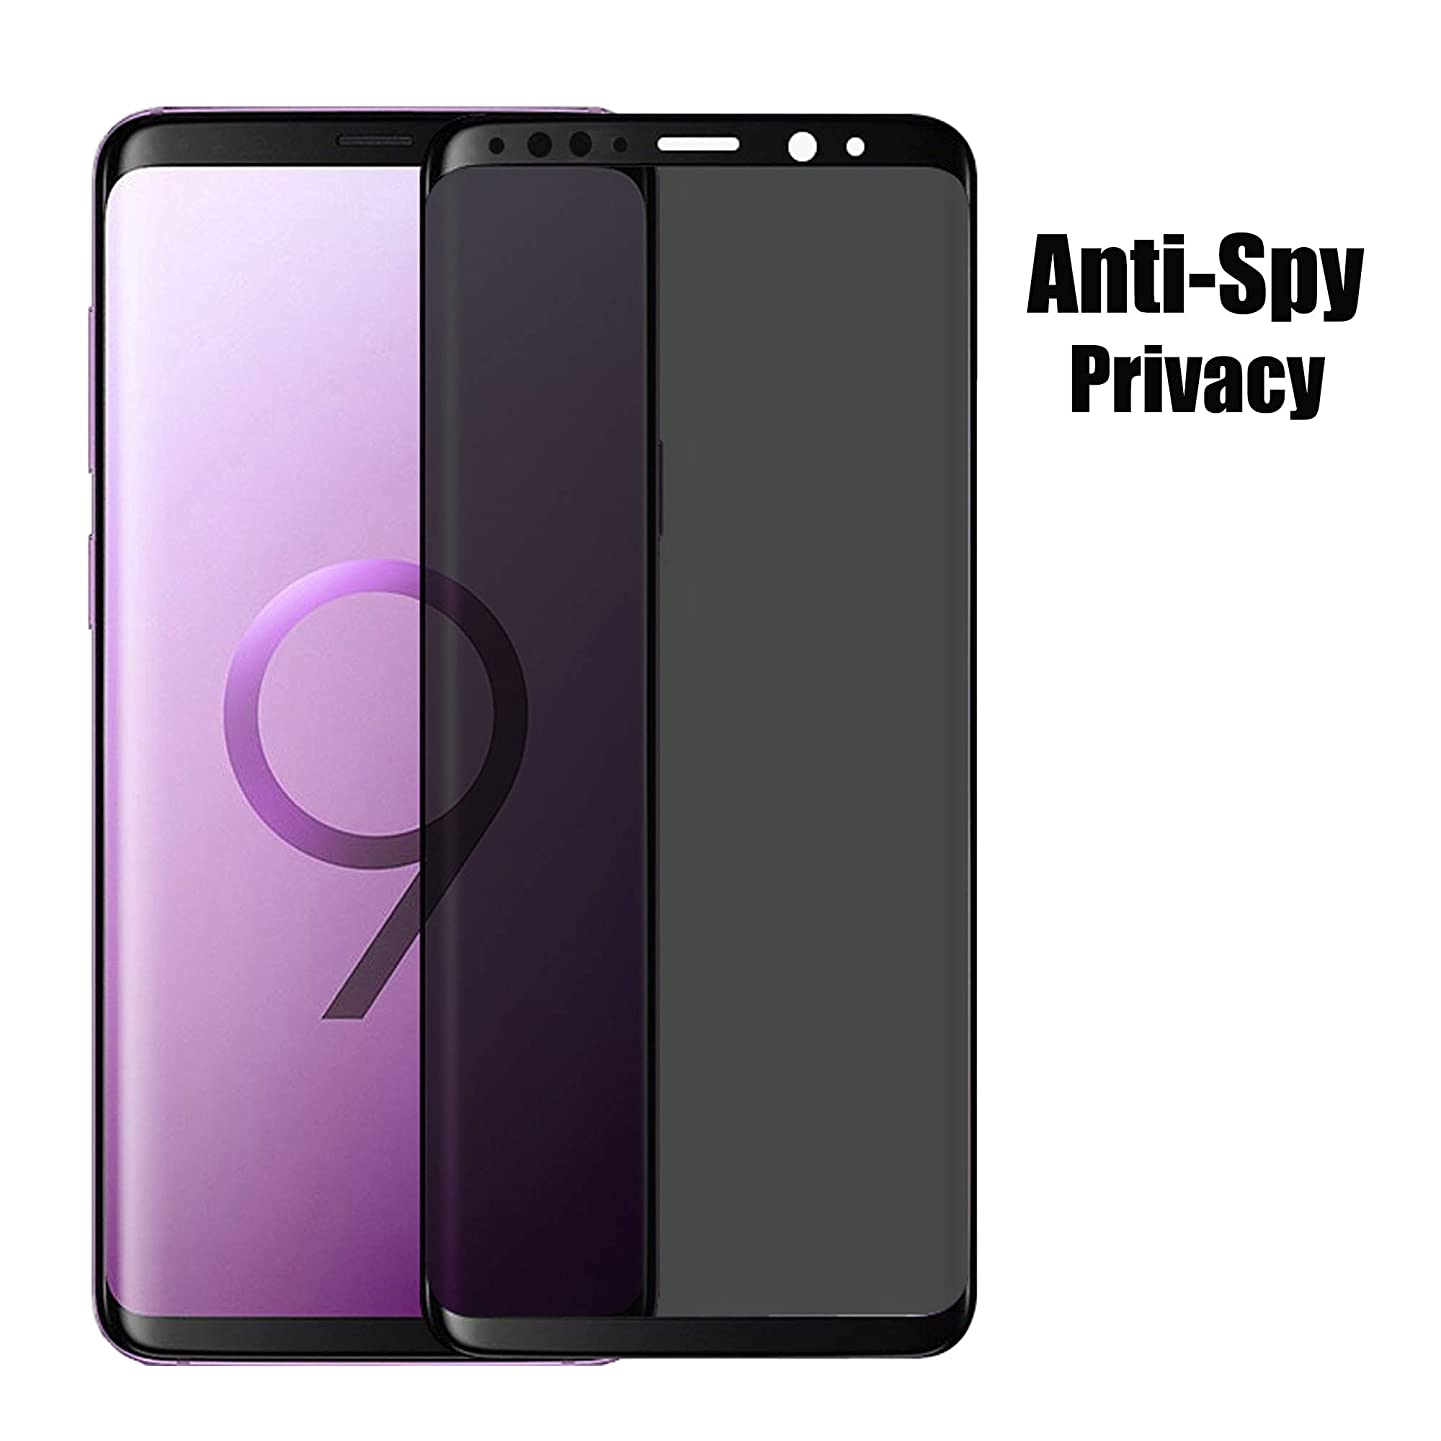 HOMRUI for Samsung Galaxy S9Plus Privacy Screen Protector, High Definition Ultra Clear and 3D Full Coverage Tempered Glass Screen Protector Film for Samsung Galaxy S9Plus(Black)